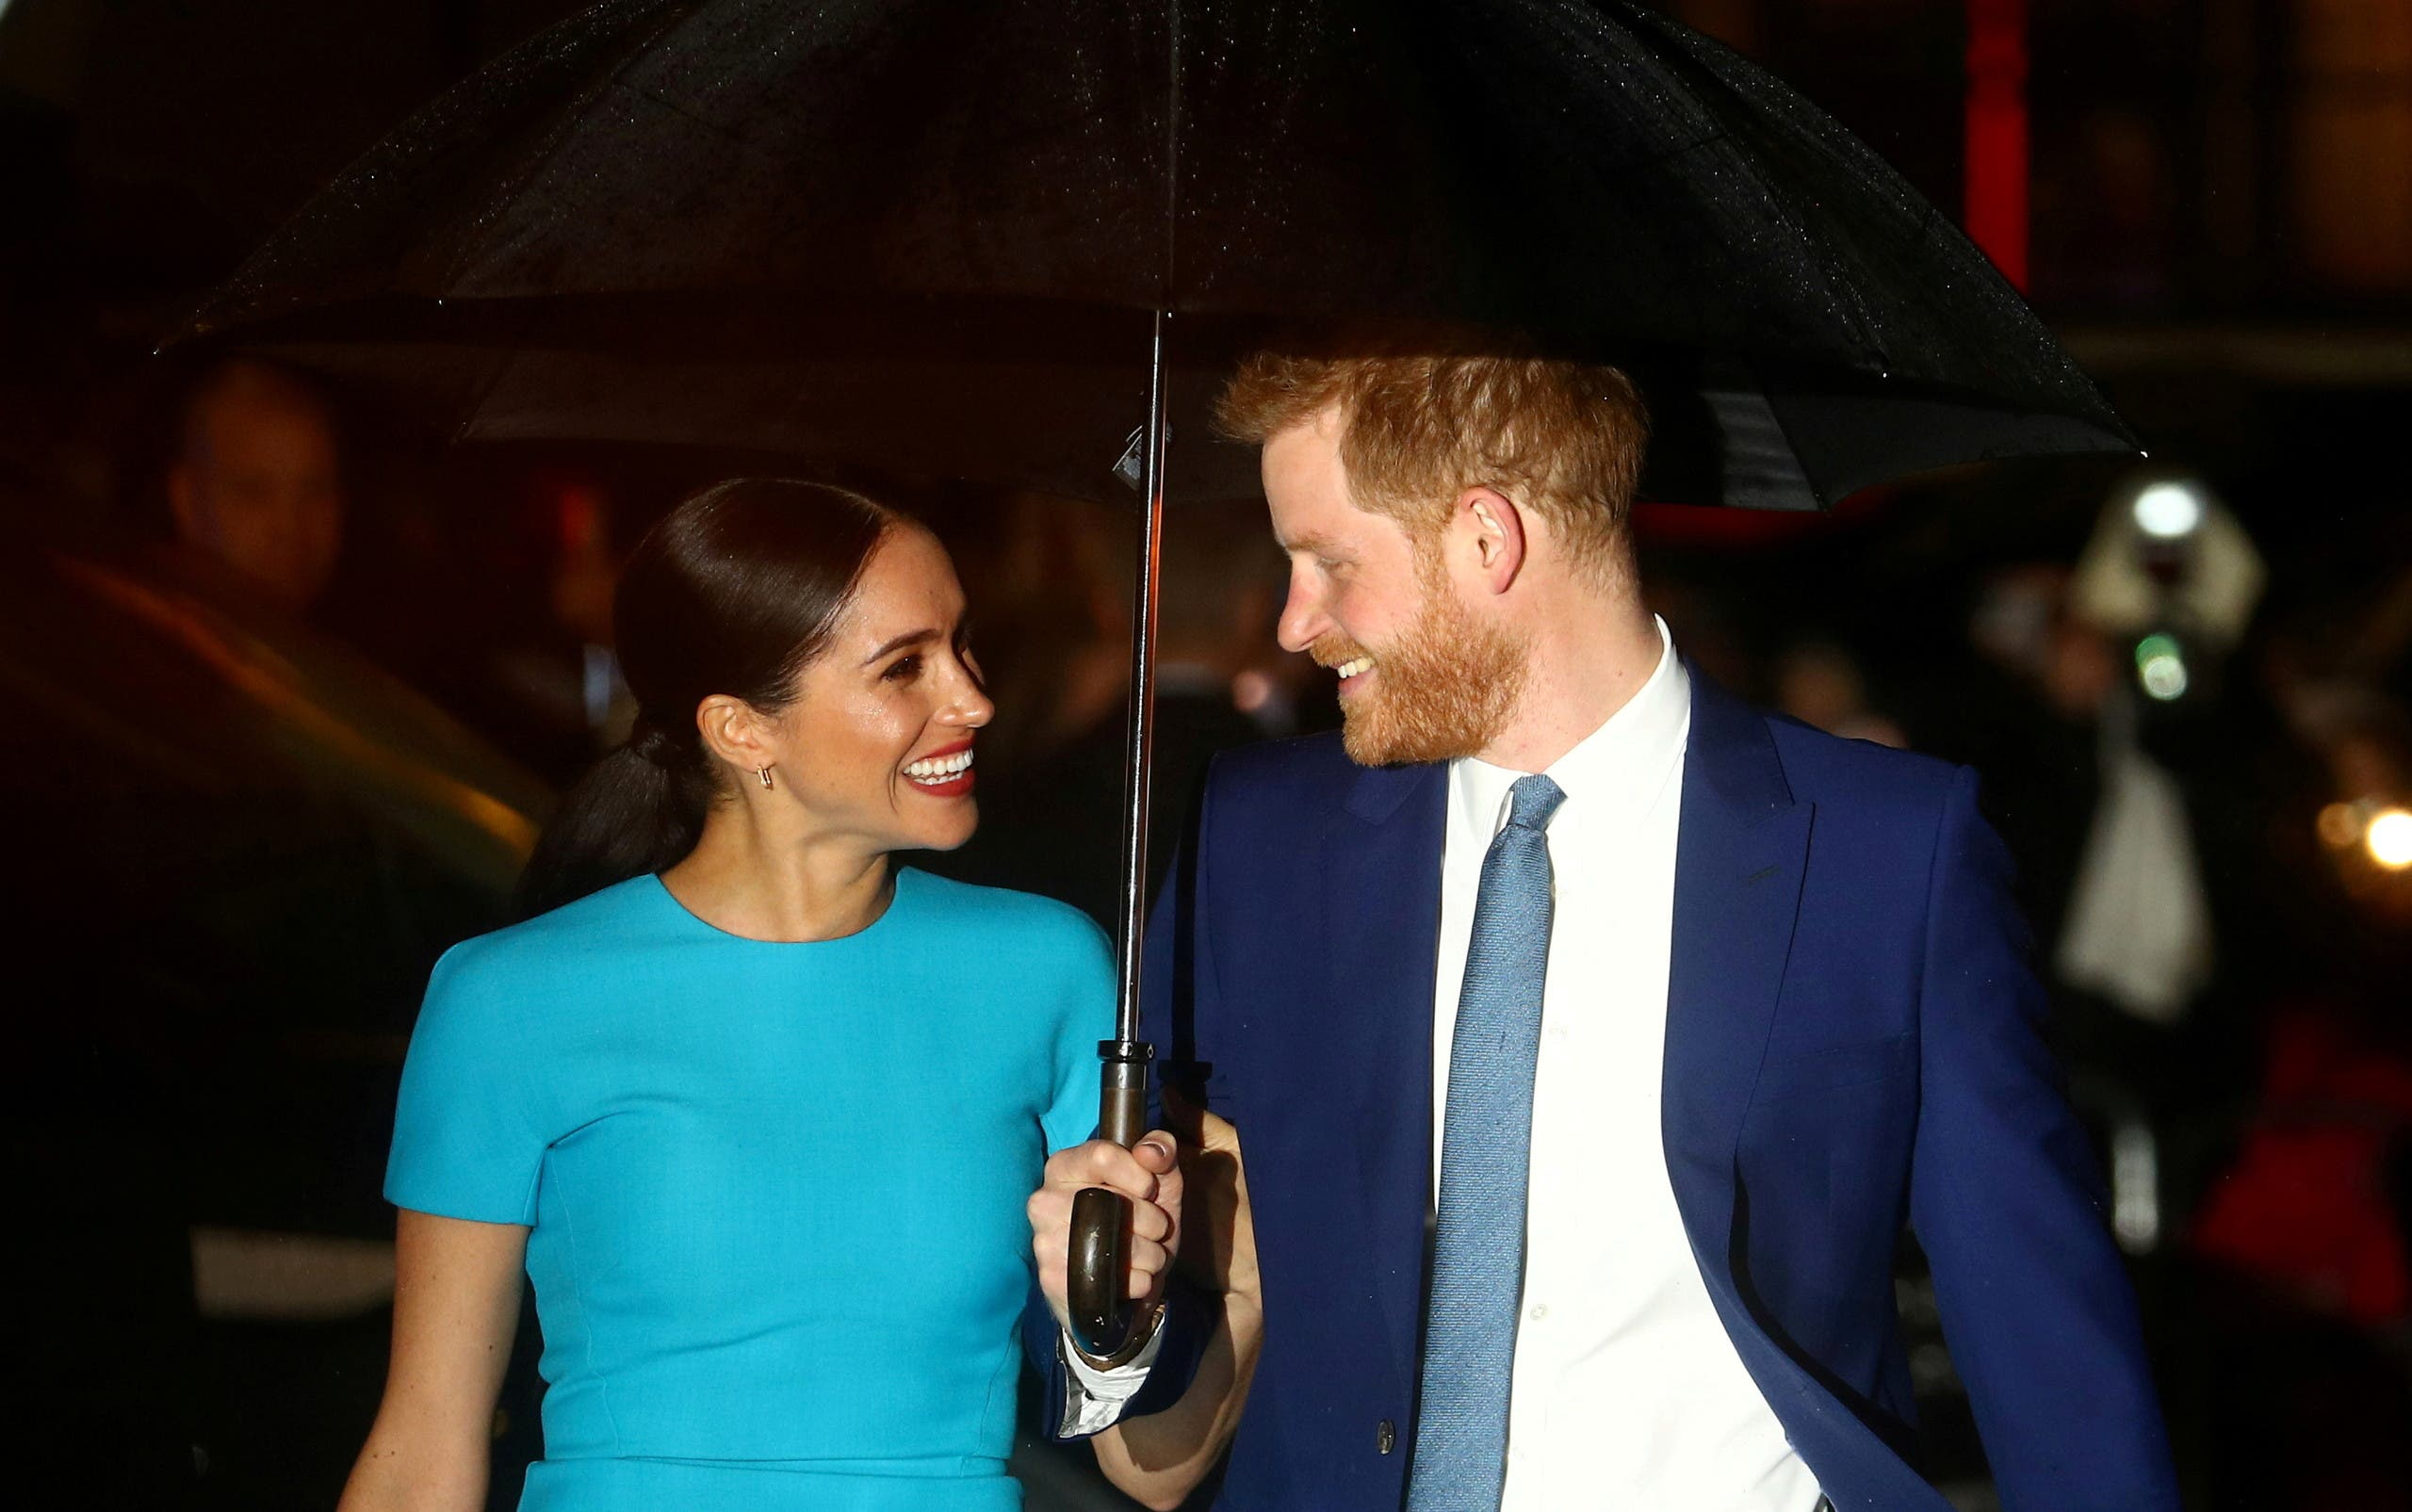 Britain's Prince Harry and his wife Meghan, Duchess of Sussex, arrive at the Endeavour Fund Awards in London, Britain, March 5, 2020. (Reuters)